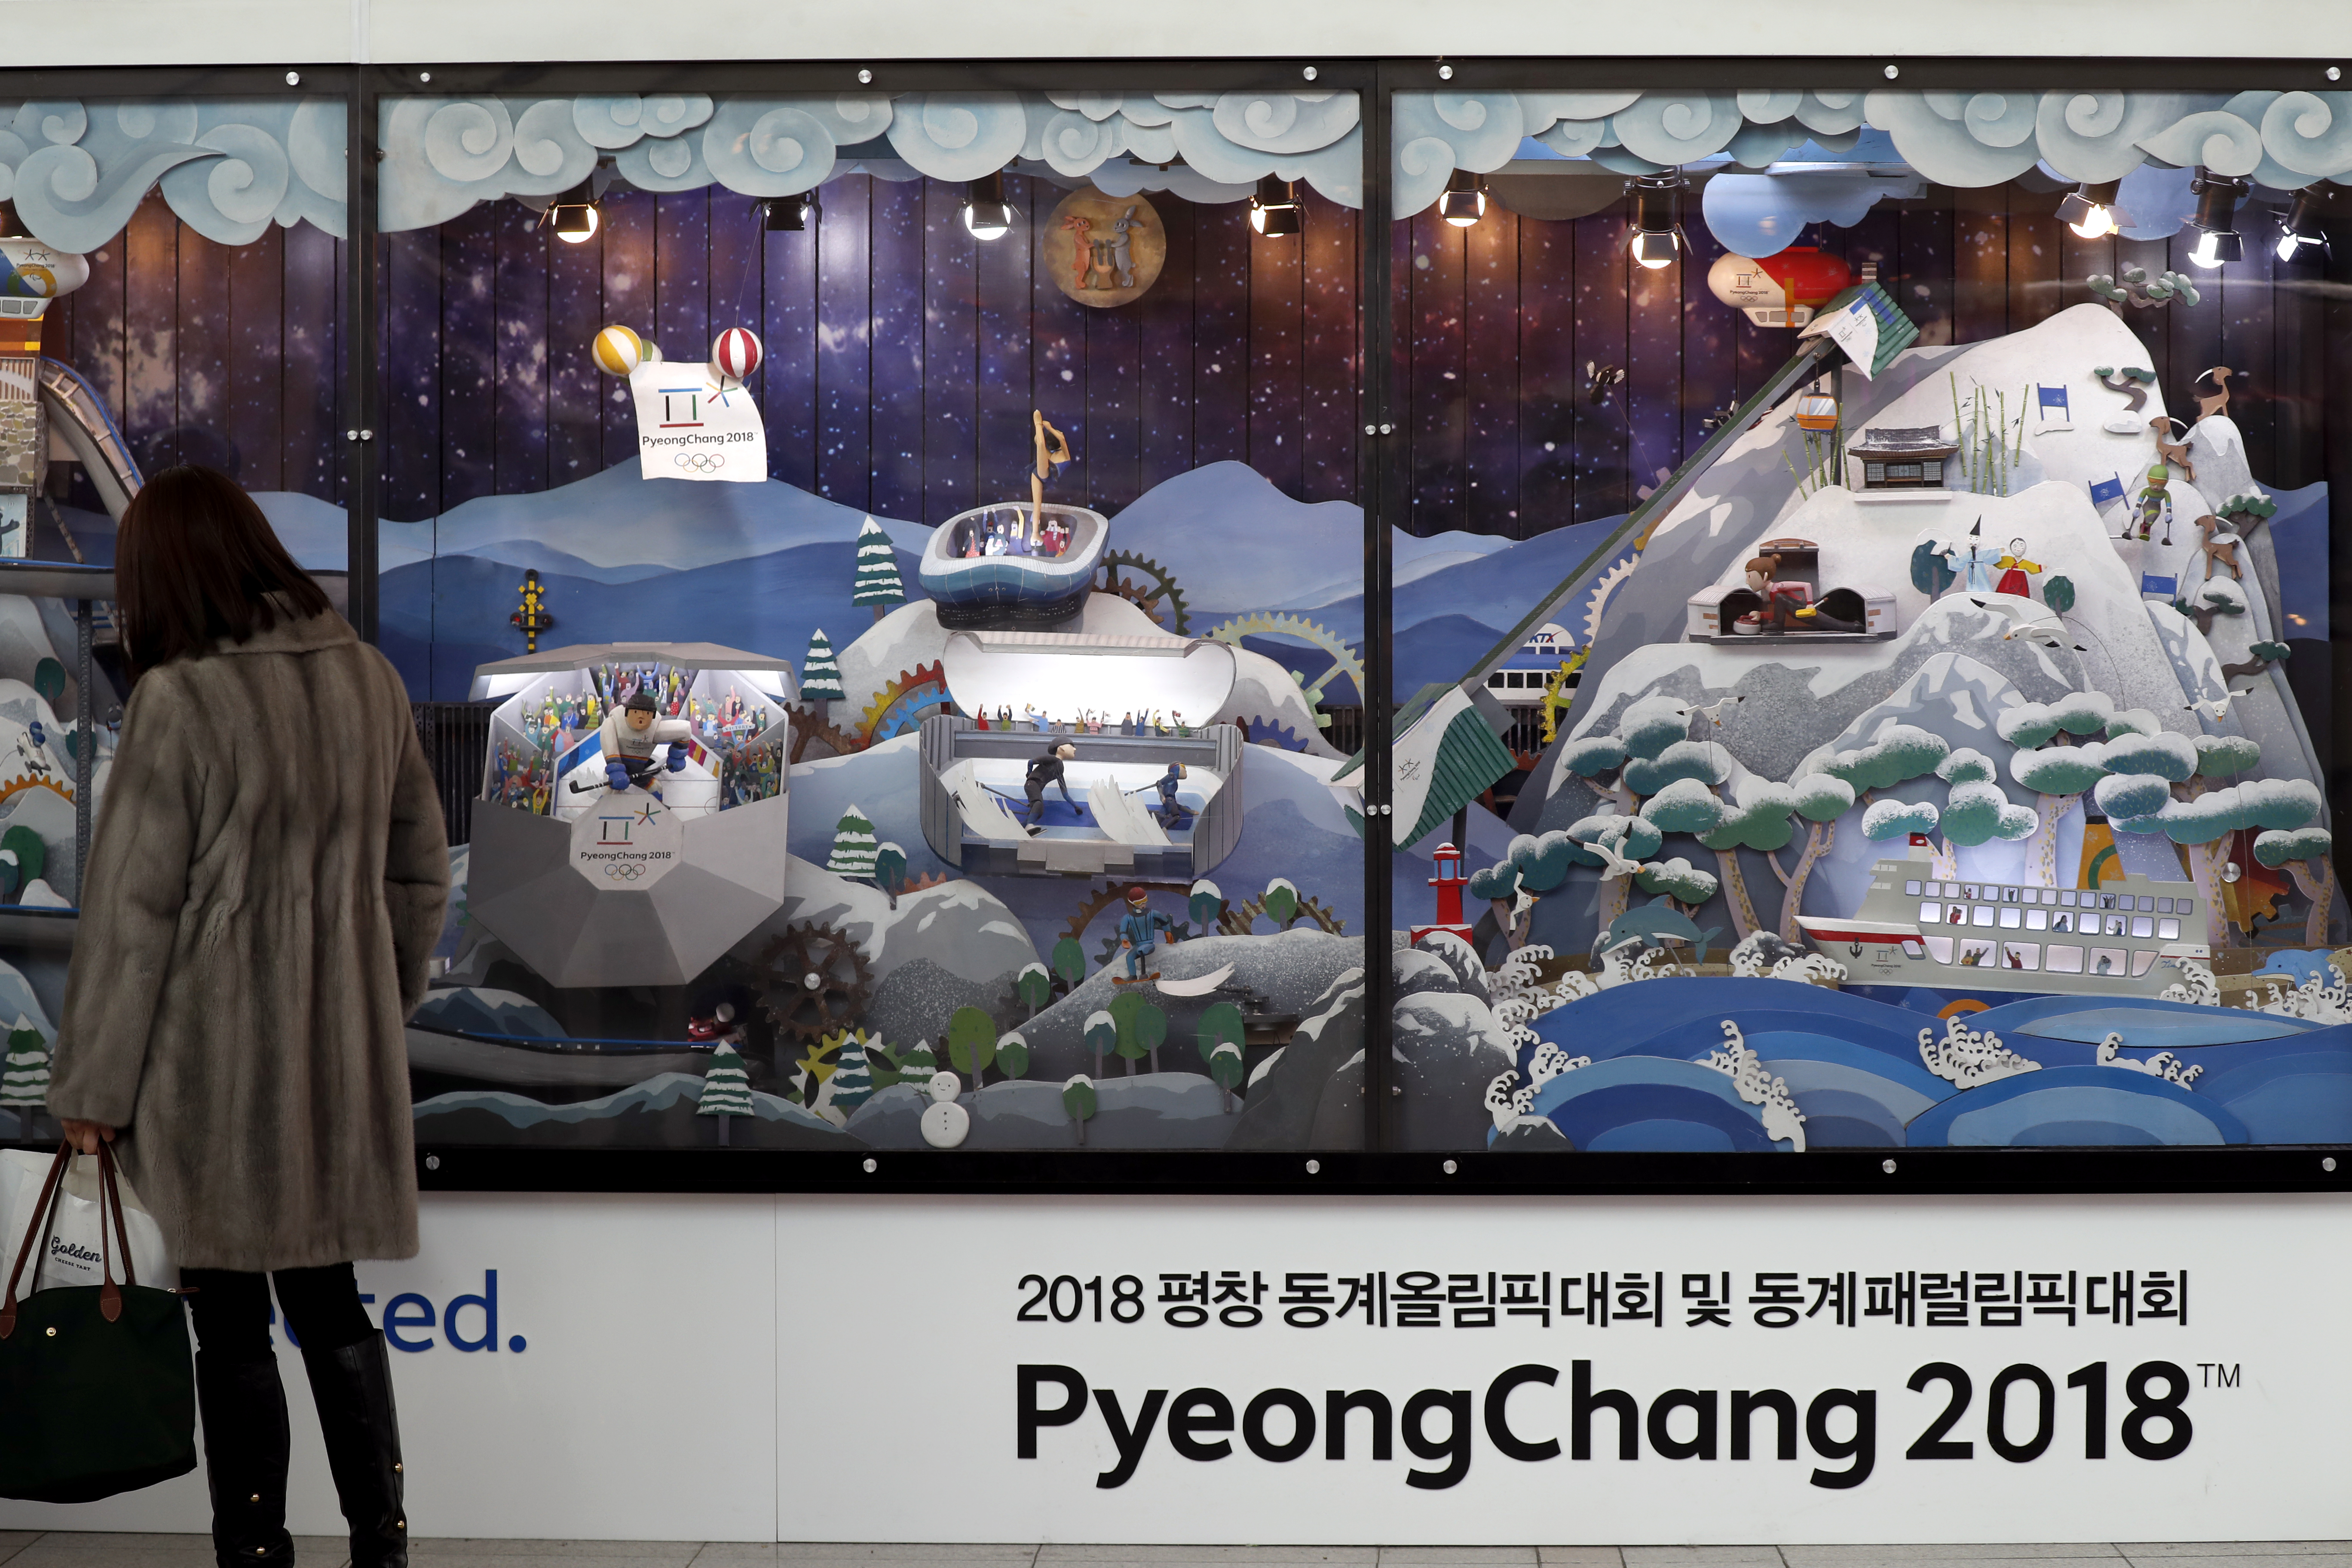 PyeongChang Winter Olympics village best ever: IOC